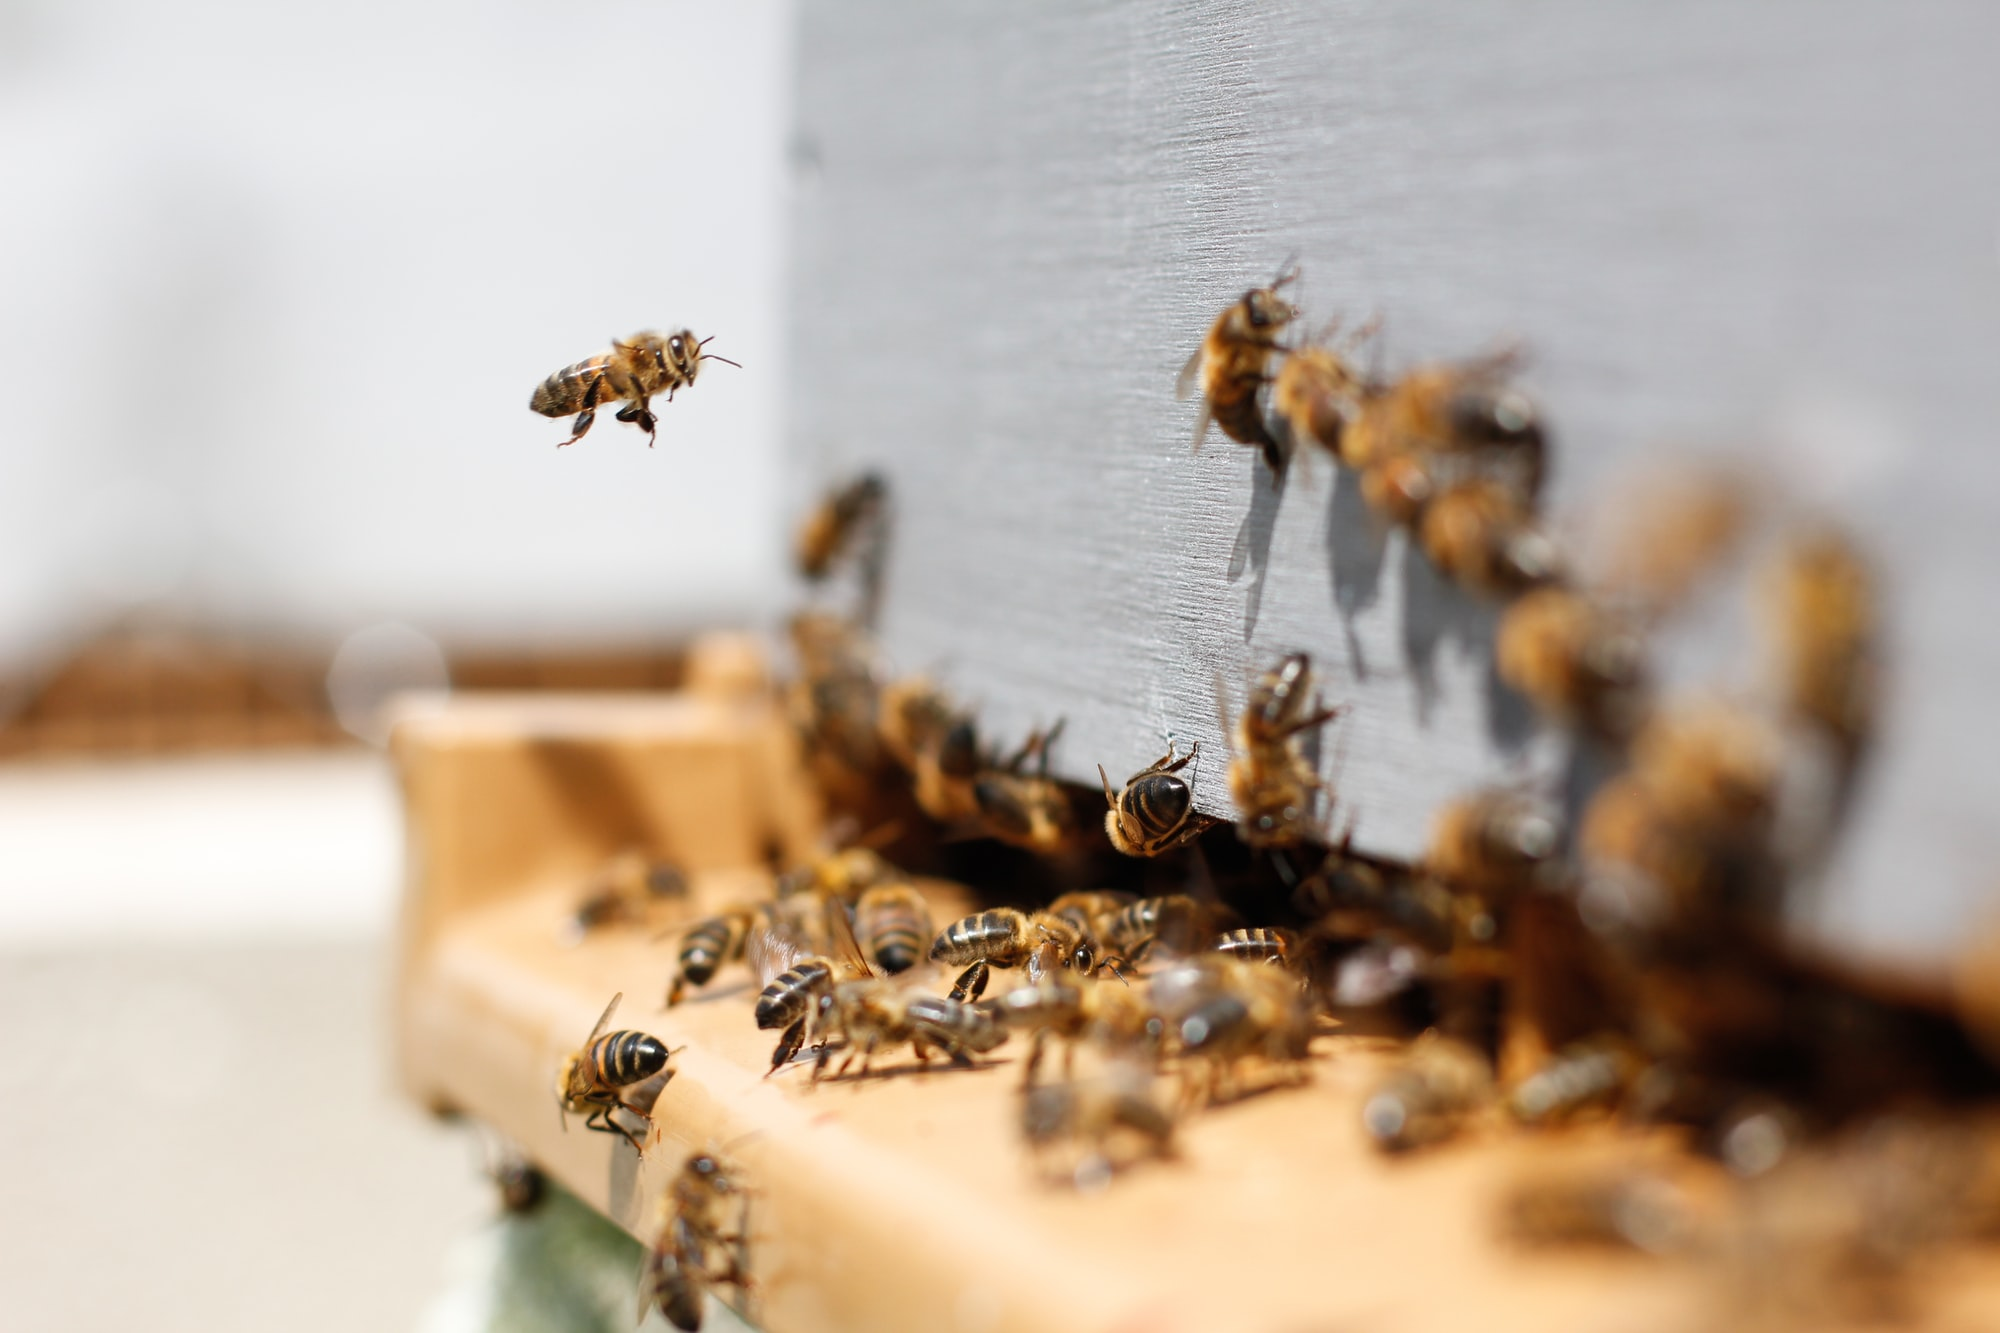 🐝 An app with AI should save bee communities from dying